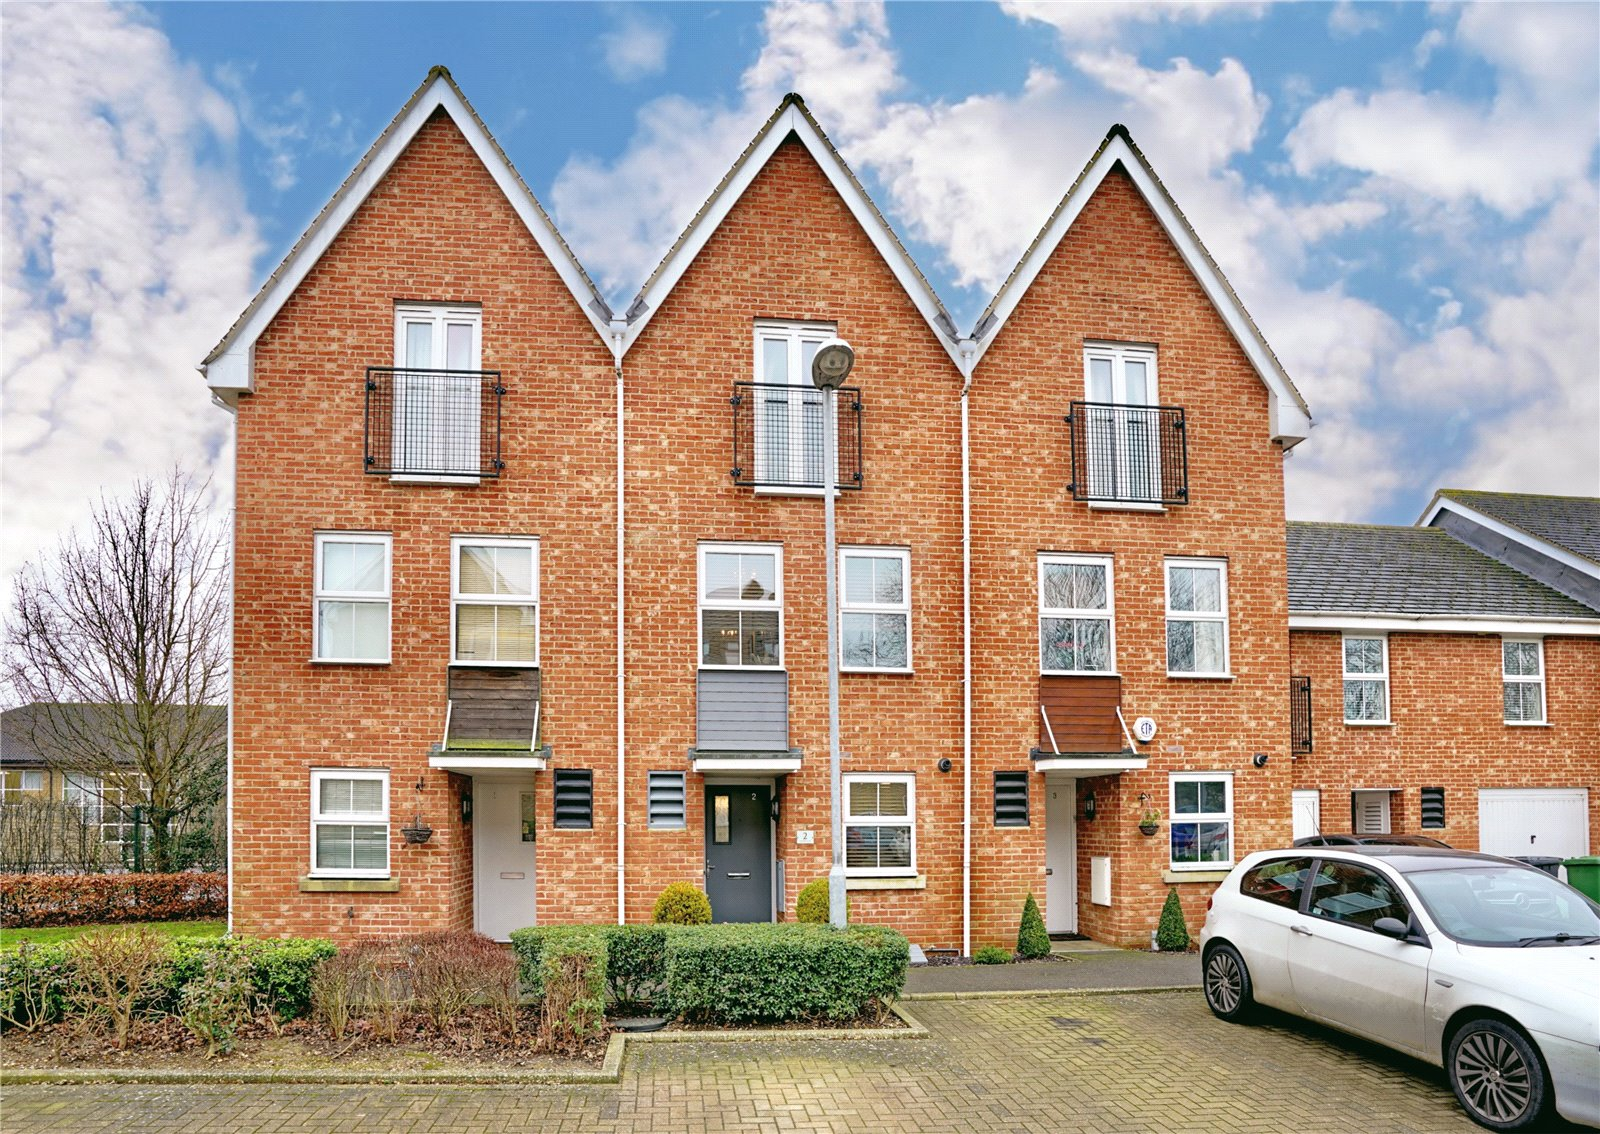 4 bed house for sale in Eaton Socon, Linton Close, PE19 8GY  - Property Image 1